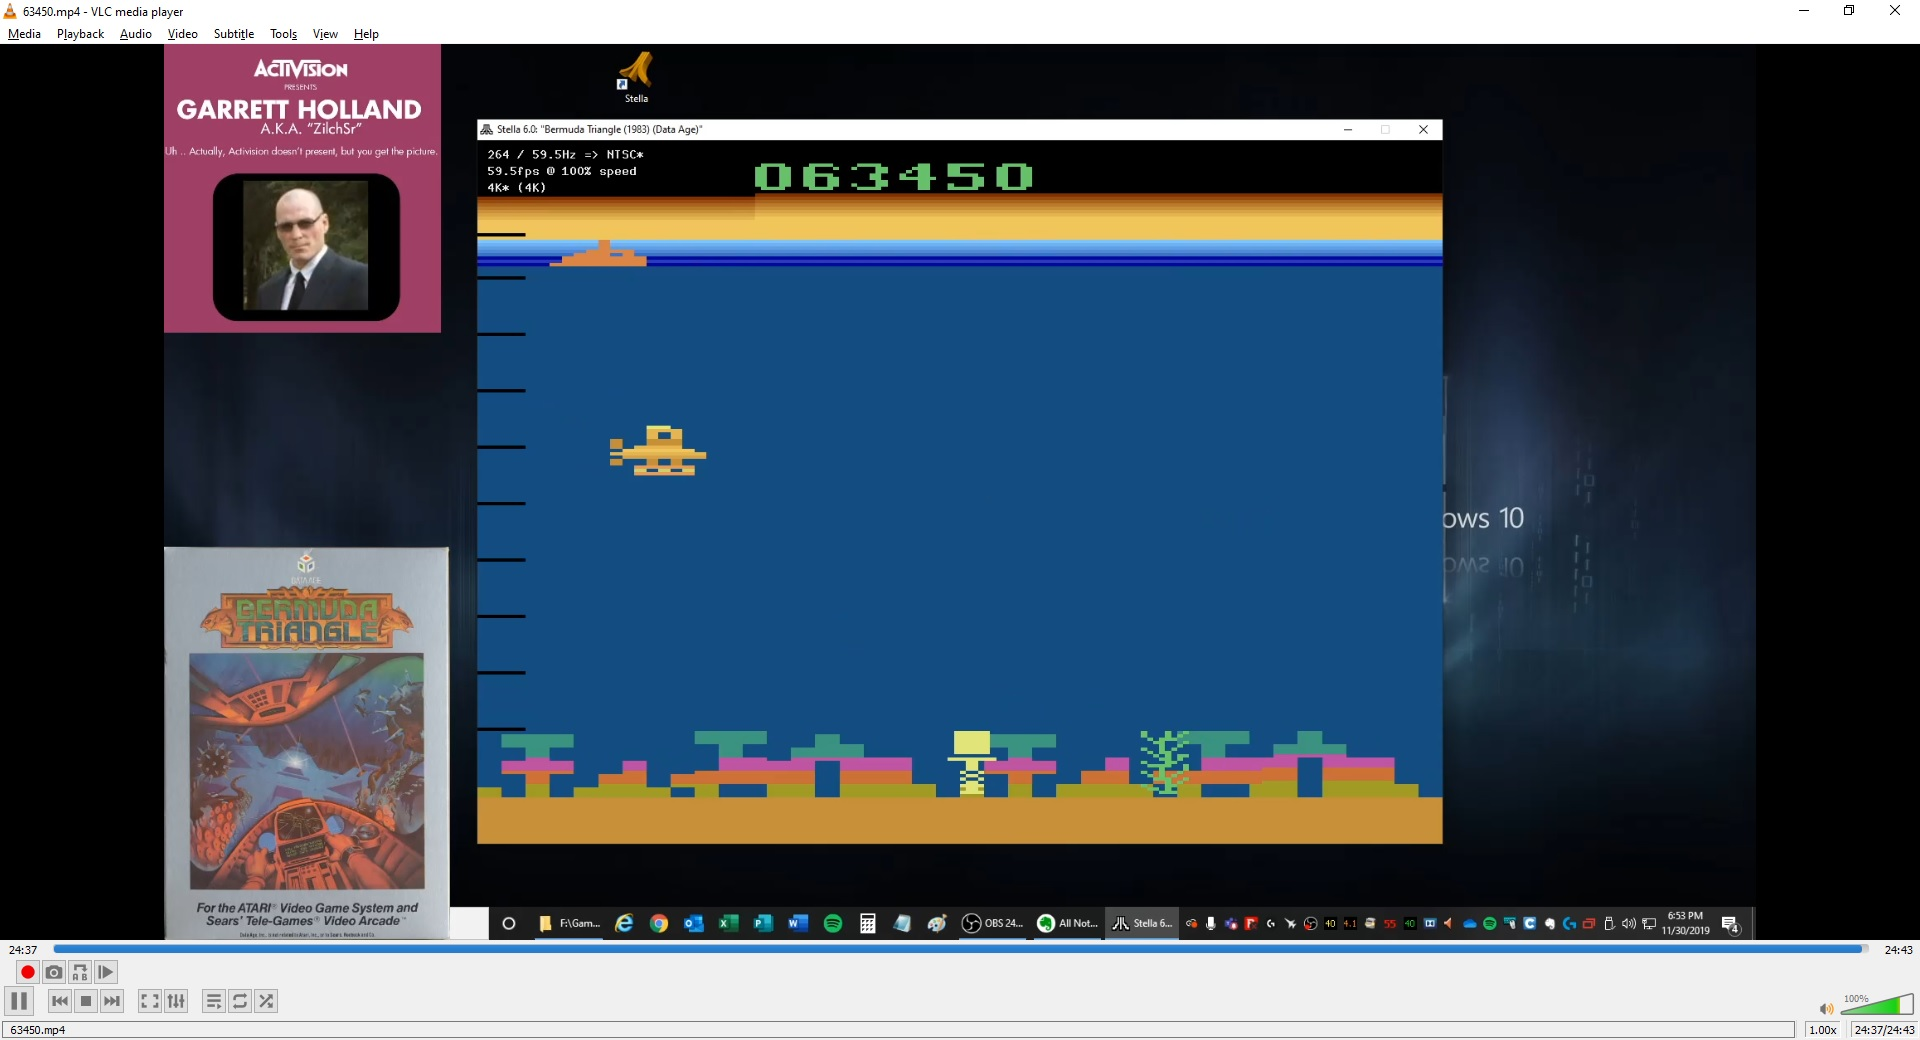 ZilchSr: Bermuda Triangle (Atari 2600 Emulated Novice/B Mode) 63,450 points on 2020-05-07 02:13:45